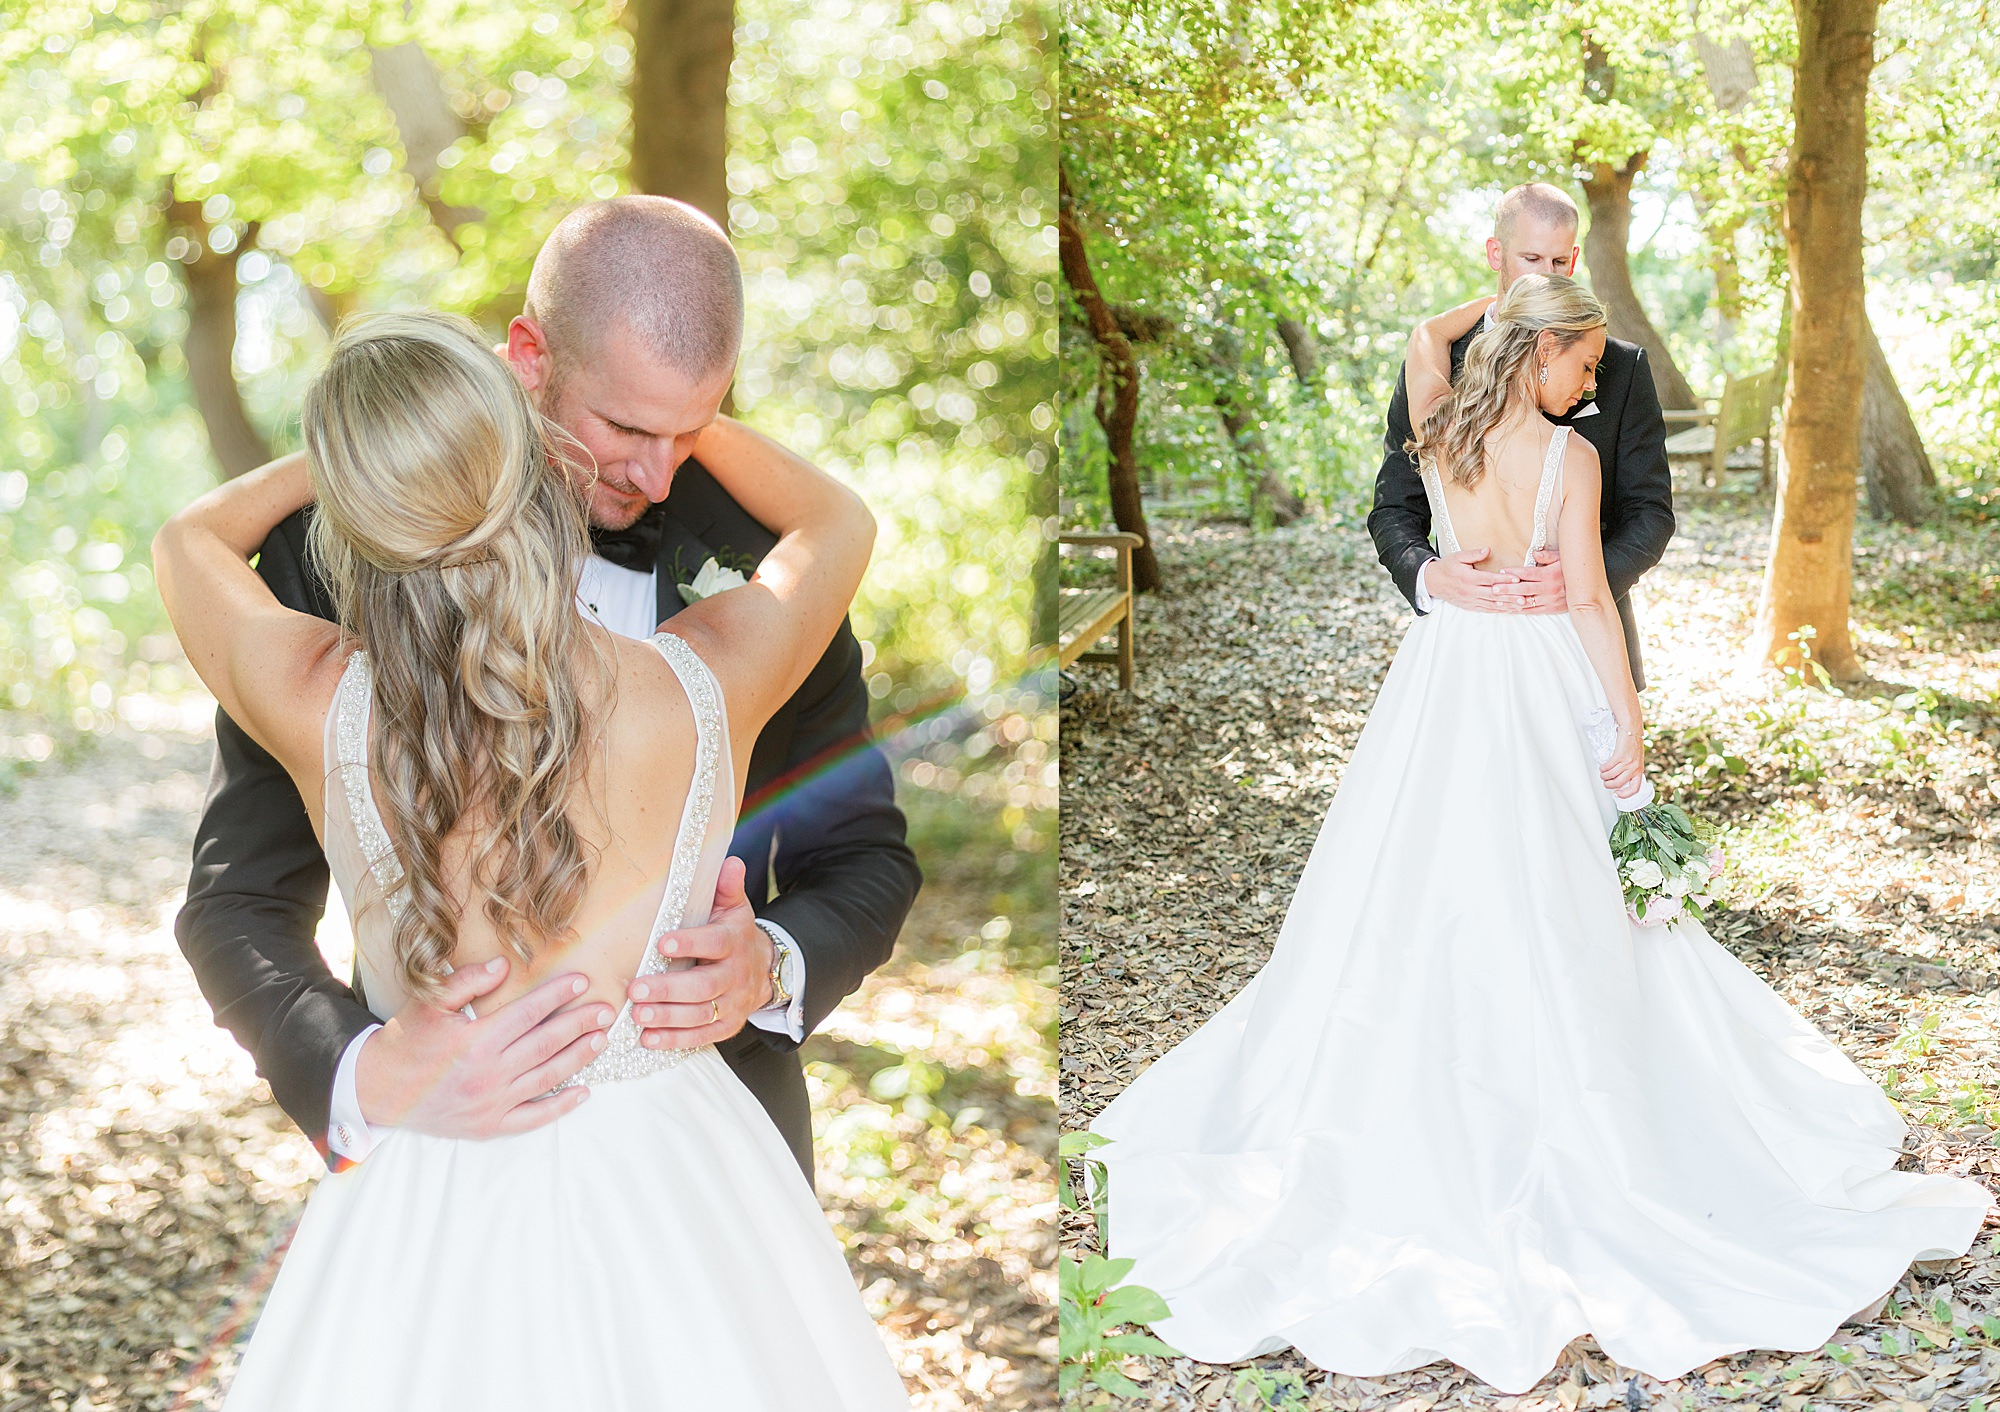 Natural and Vibrant Wedding Photography at the Reeds in Stone Harbor NJ by Magdalena Studios 0046